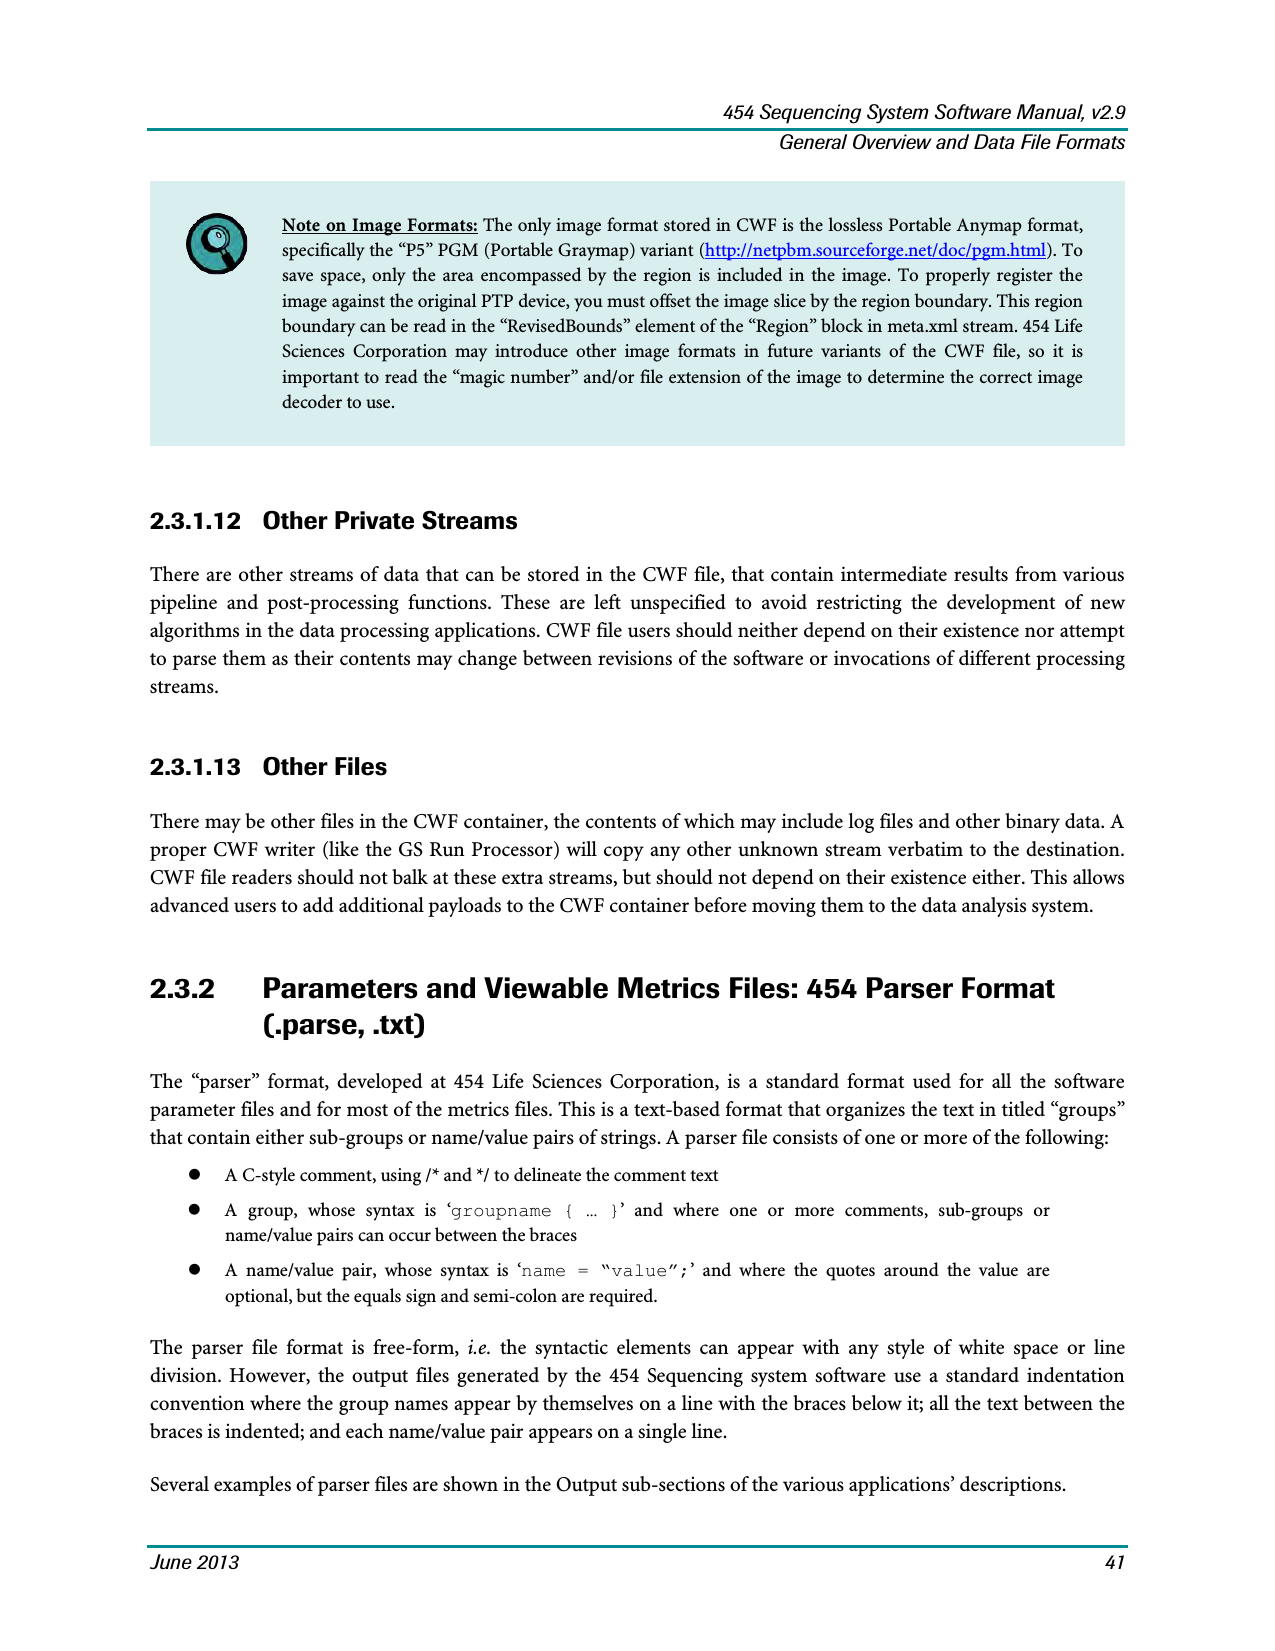 USM-00058.09_454SeqSys_SWManual-v2.9_Overview-41.png